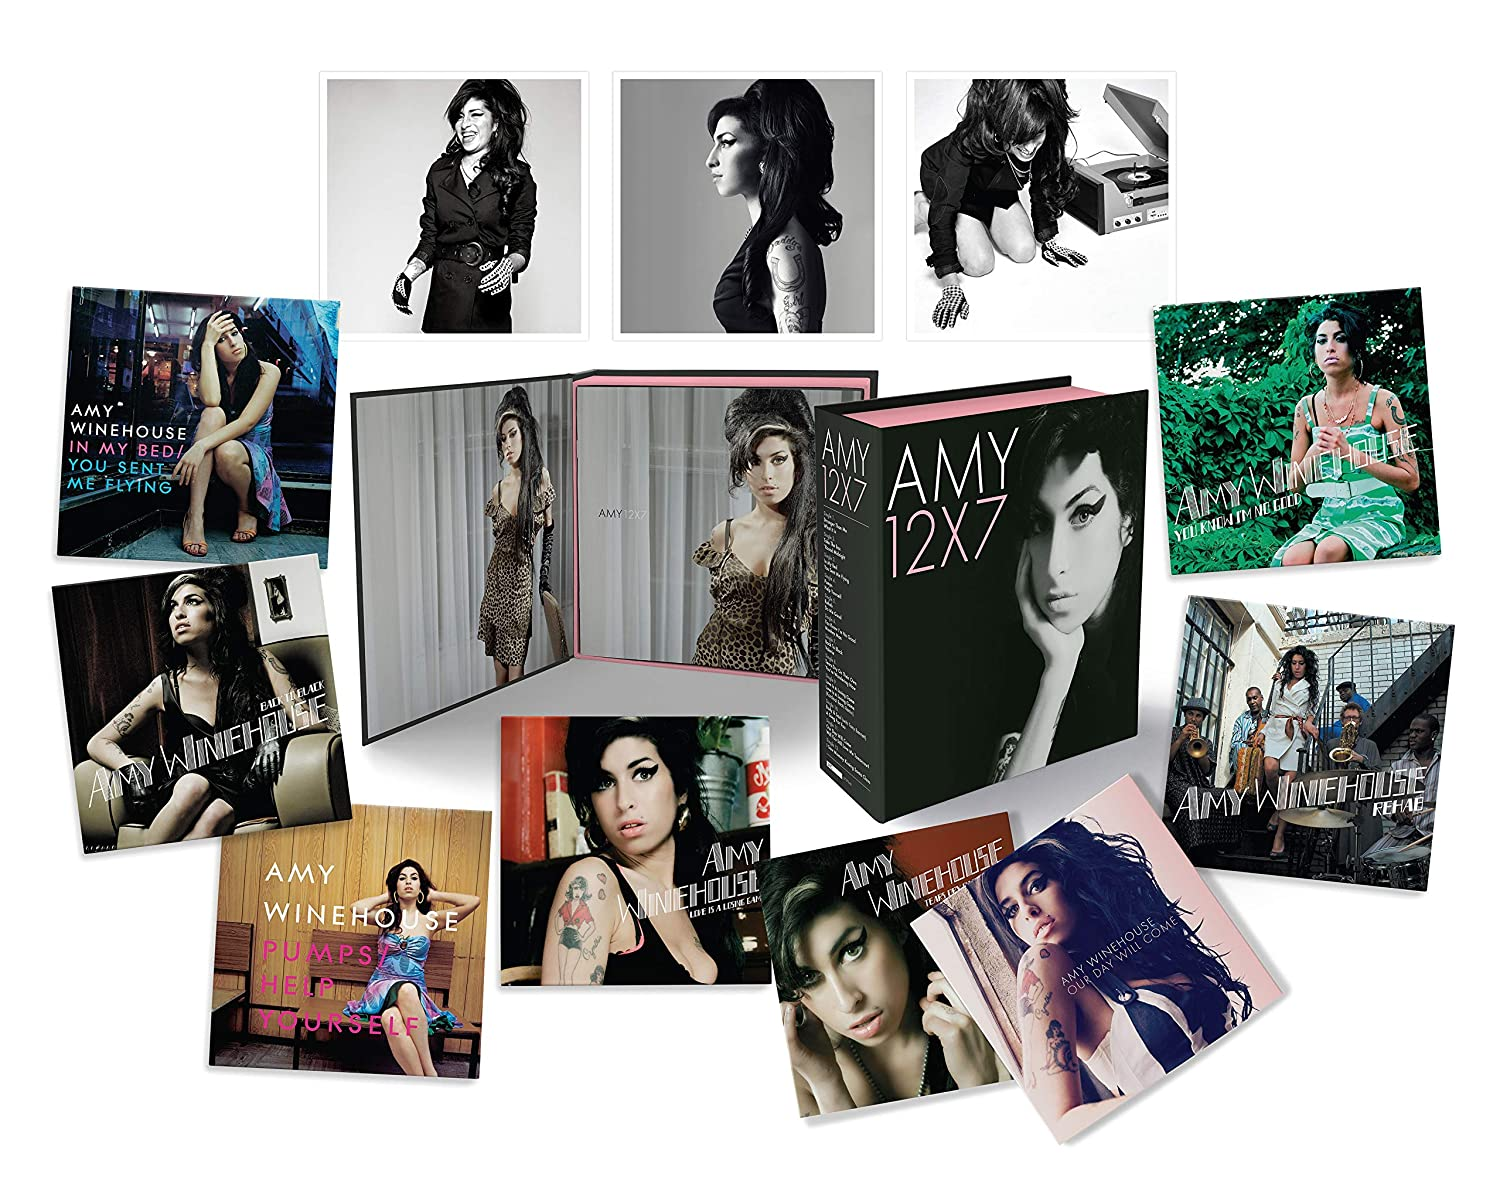 "Amy Winehouse em 12x7: The Singles Collection [12 7"" Singles Box Set] - O Box definitivo!"